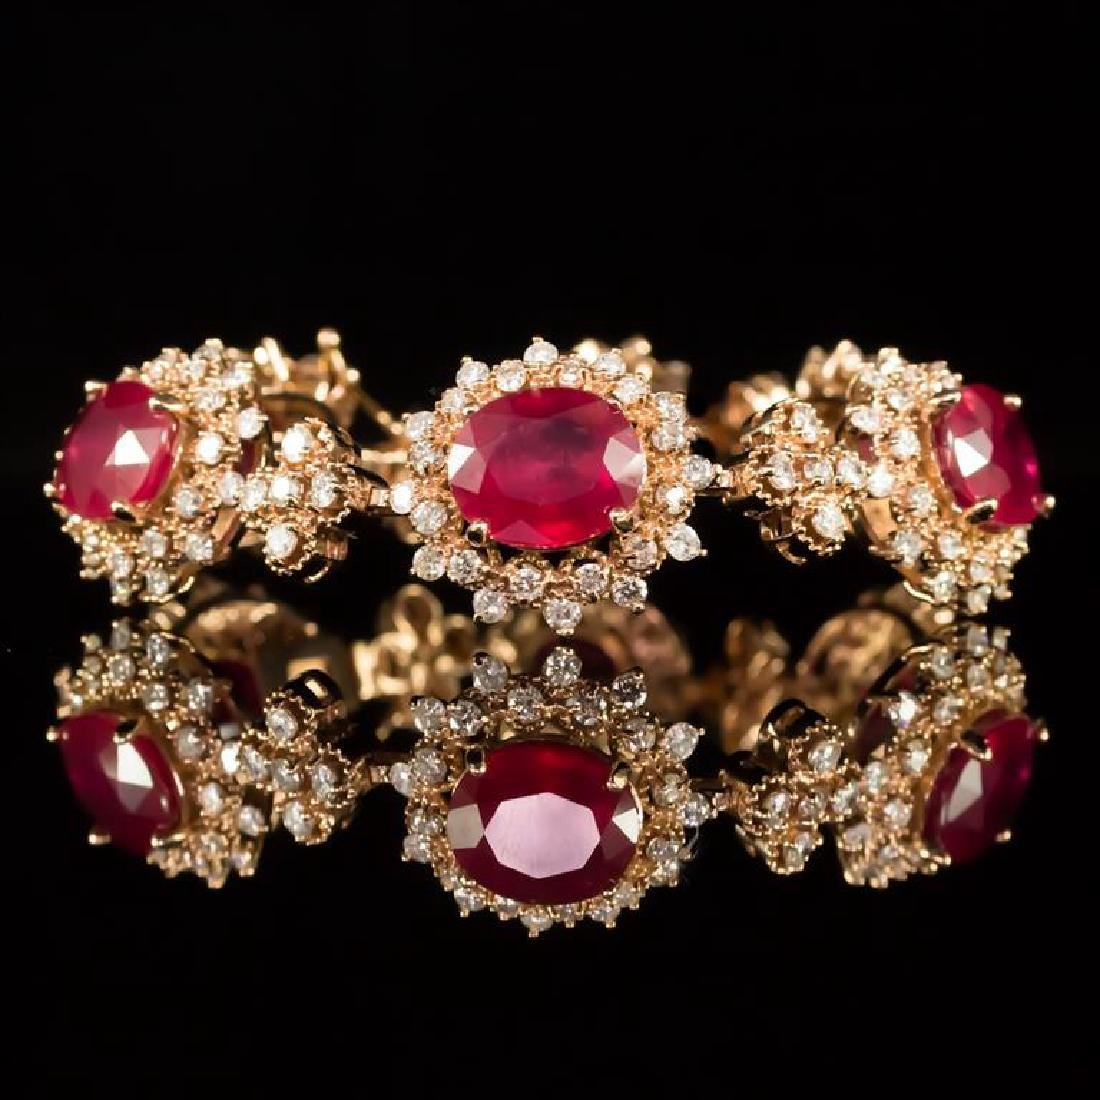 14K Gold 26.24ct Ruby 6.81ct Diamond Bracelet